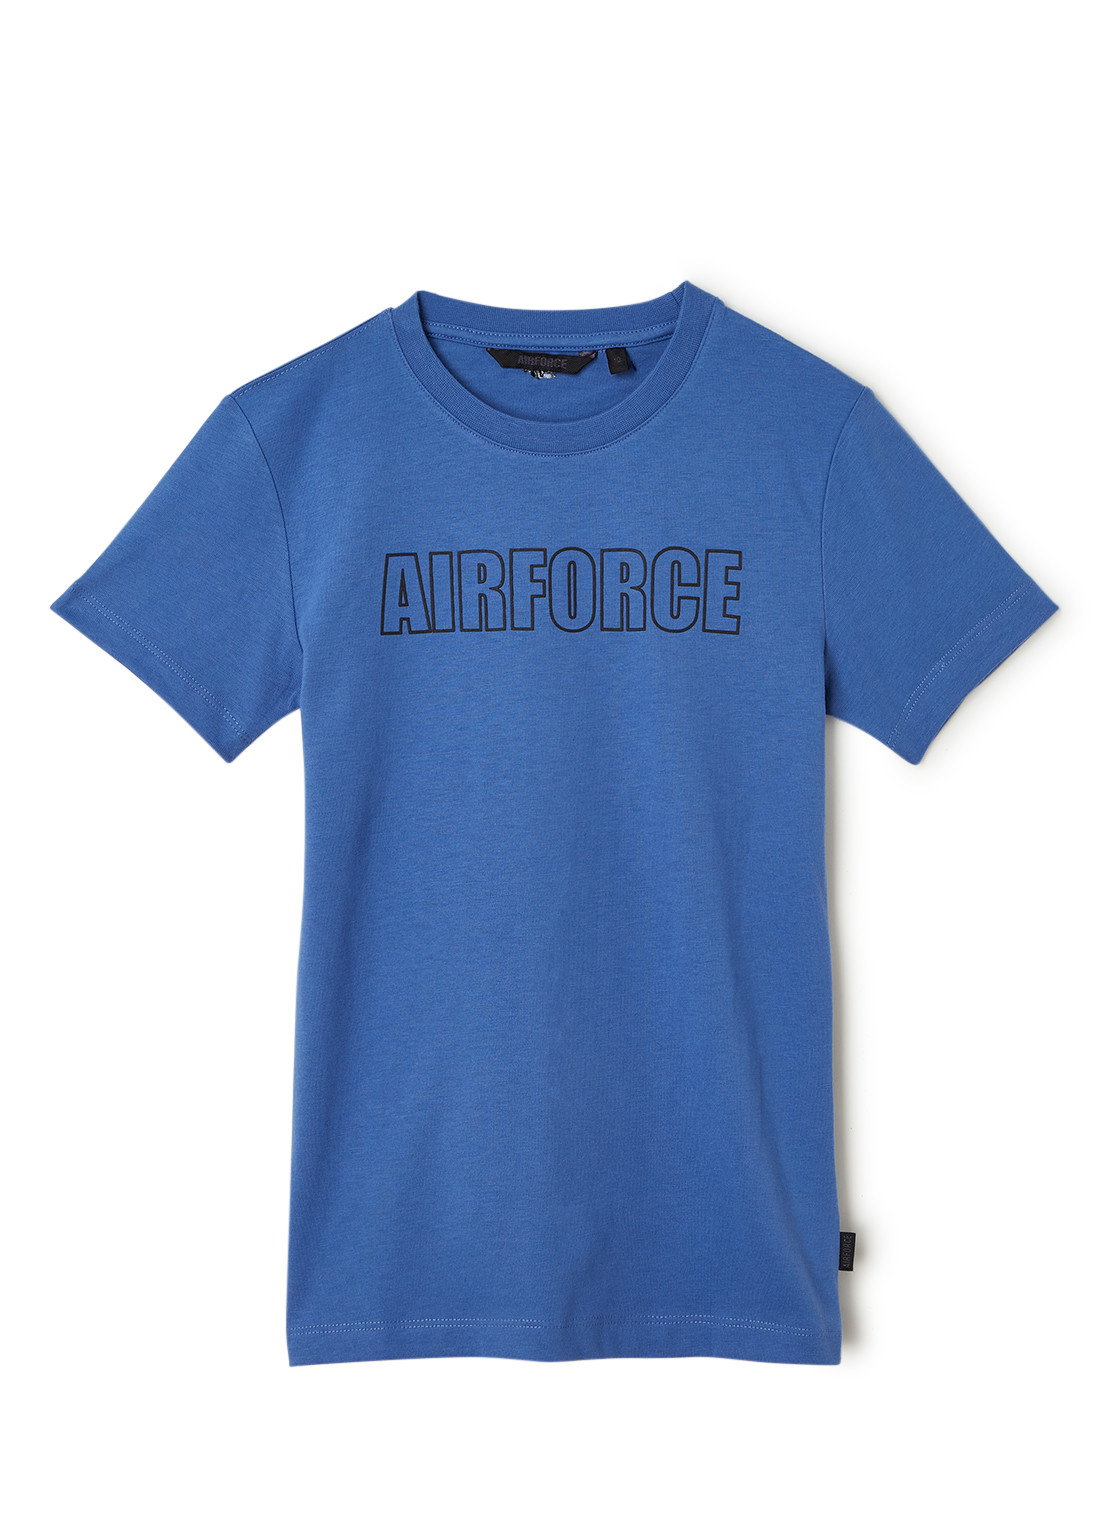 Airforce T-shirt van gerecycled polyester met logoprint